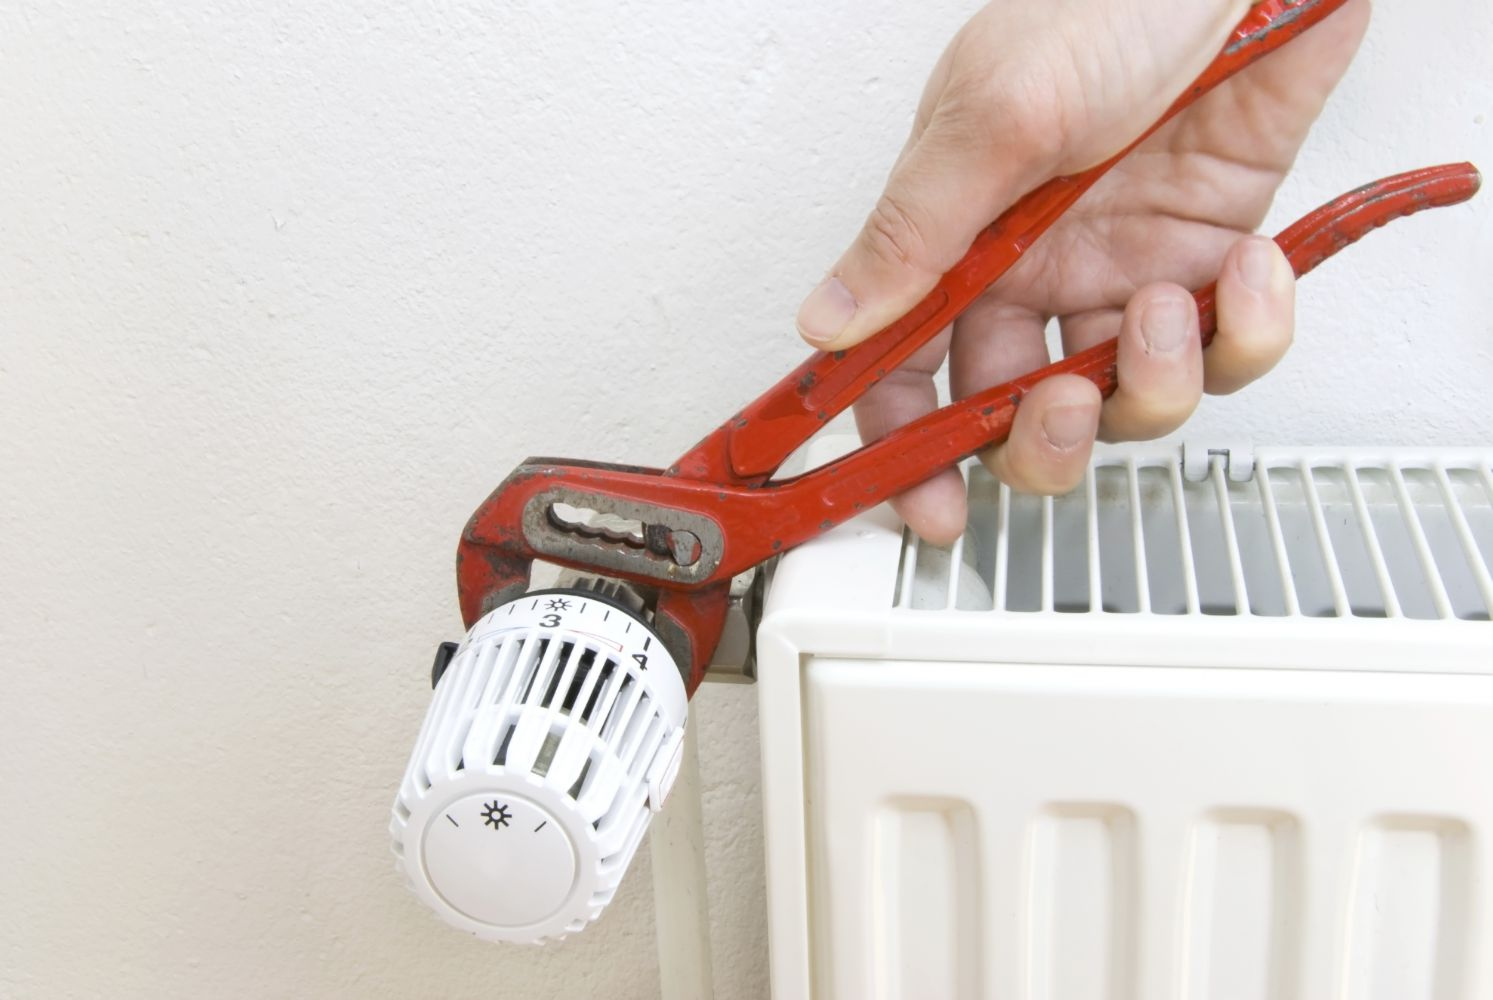 heating contractors adjusting heater with a wrench in Wisconsin Rapids, WI